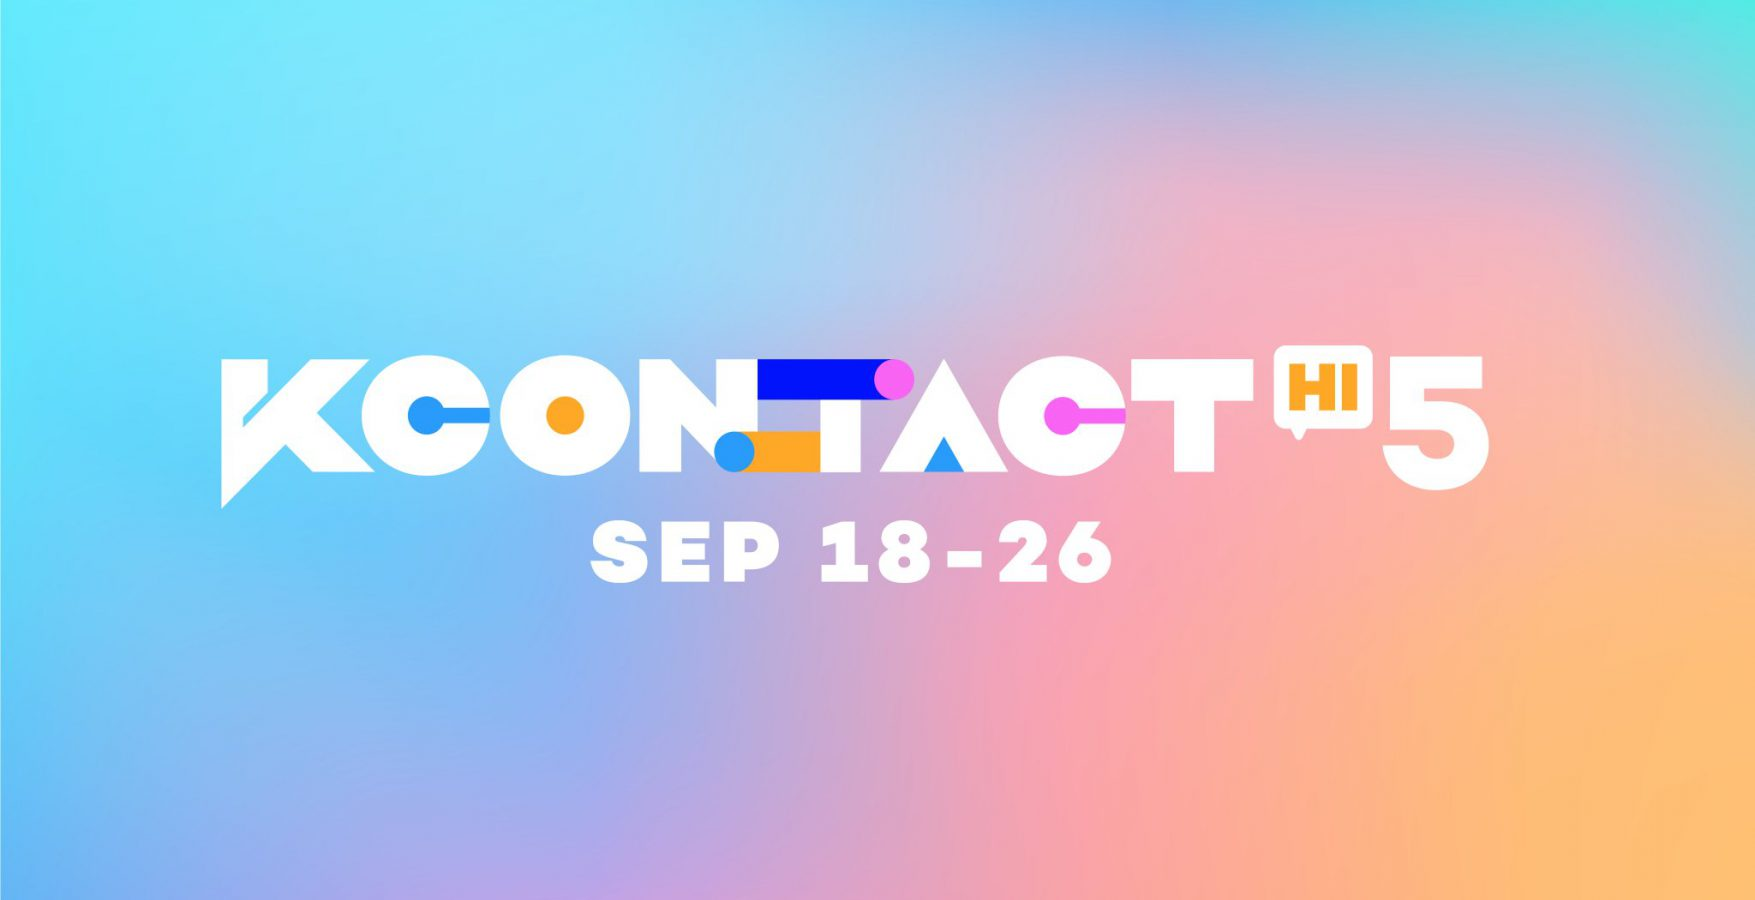 Photo of KCON:TACT HI 5 taking place from September 18 to September 26